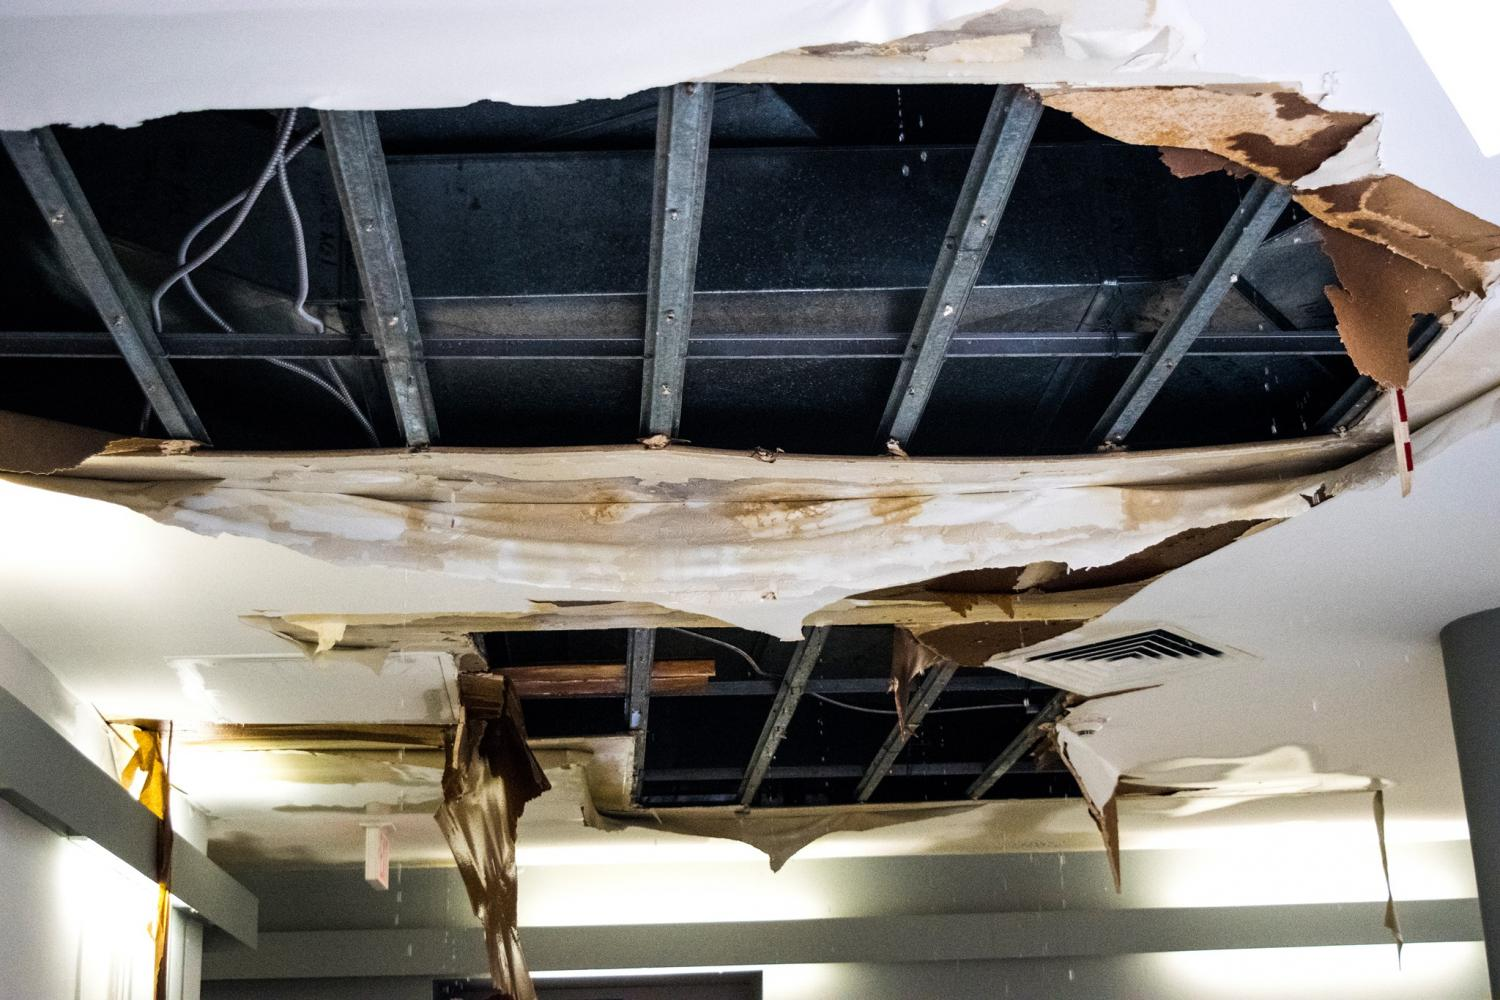 Water leaks through the roof in the Suraci Gallery in the Shield Center for Visual Arts.